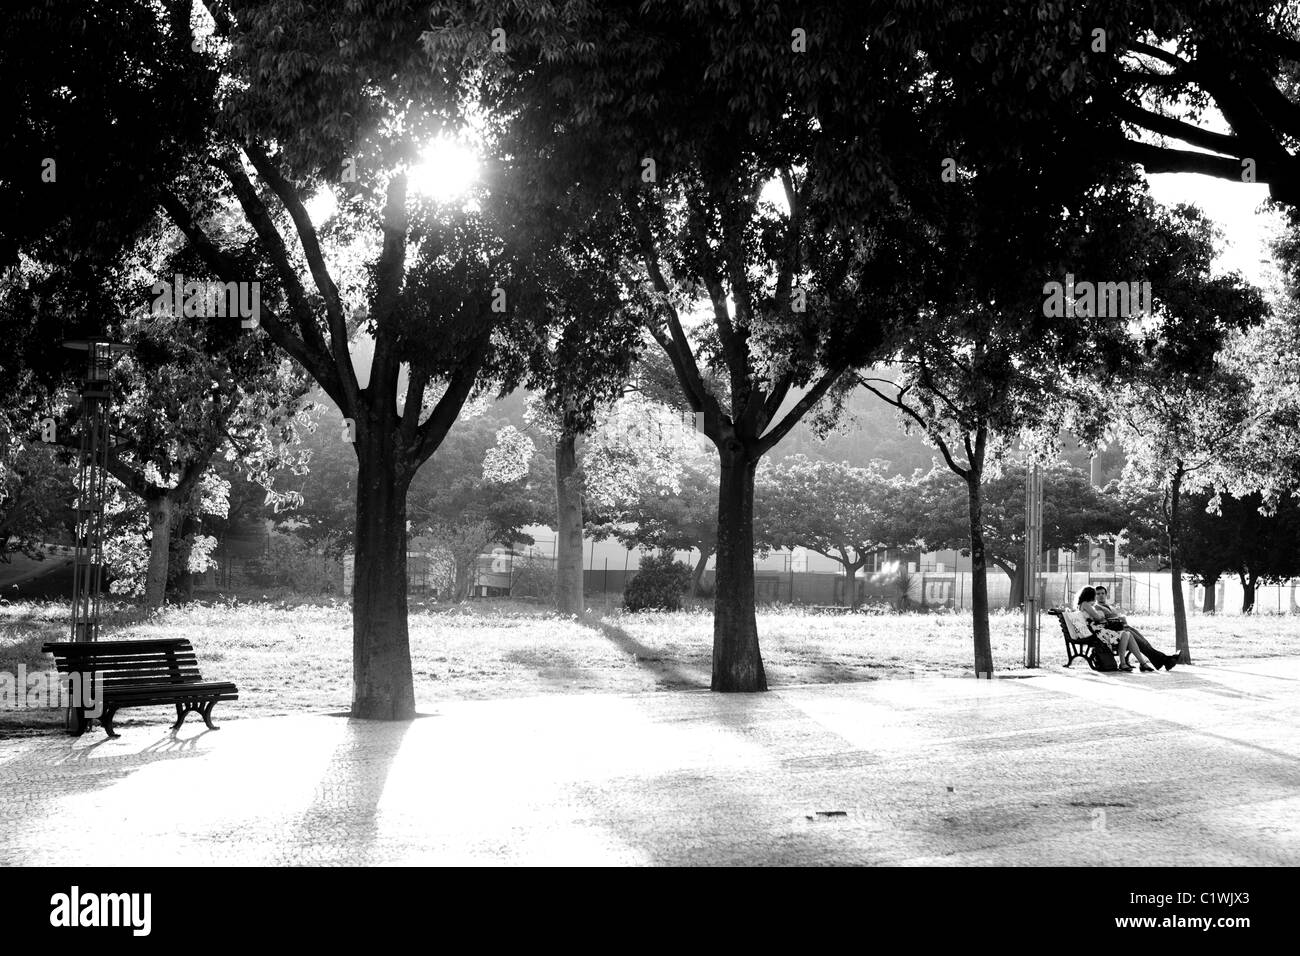 Two Lovers Sit Isolated On Park Bench In Large Urban Park At Sunset